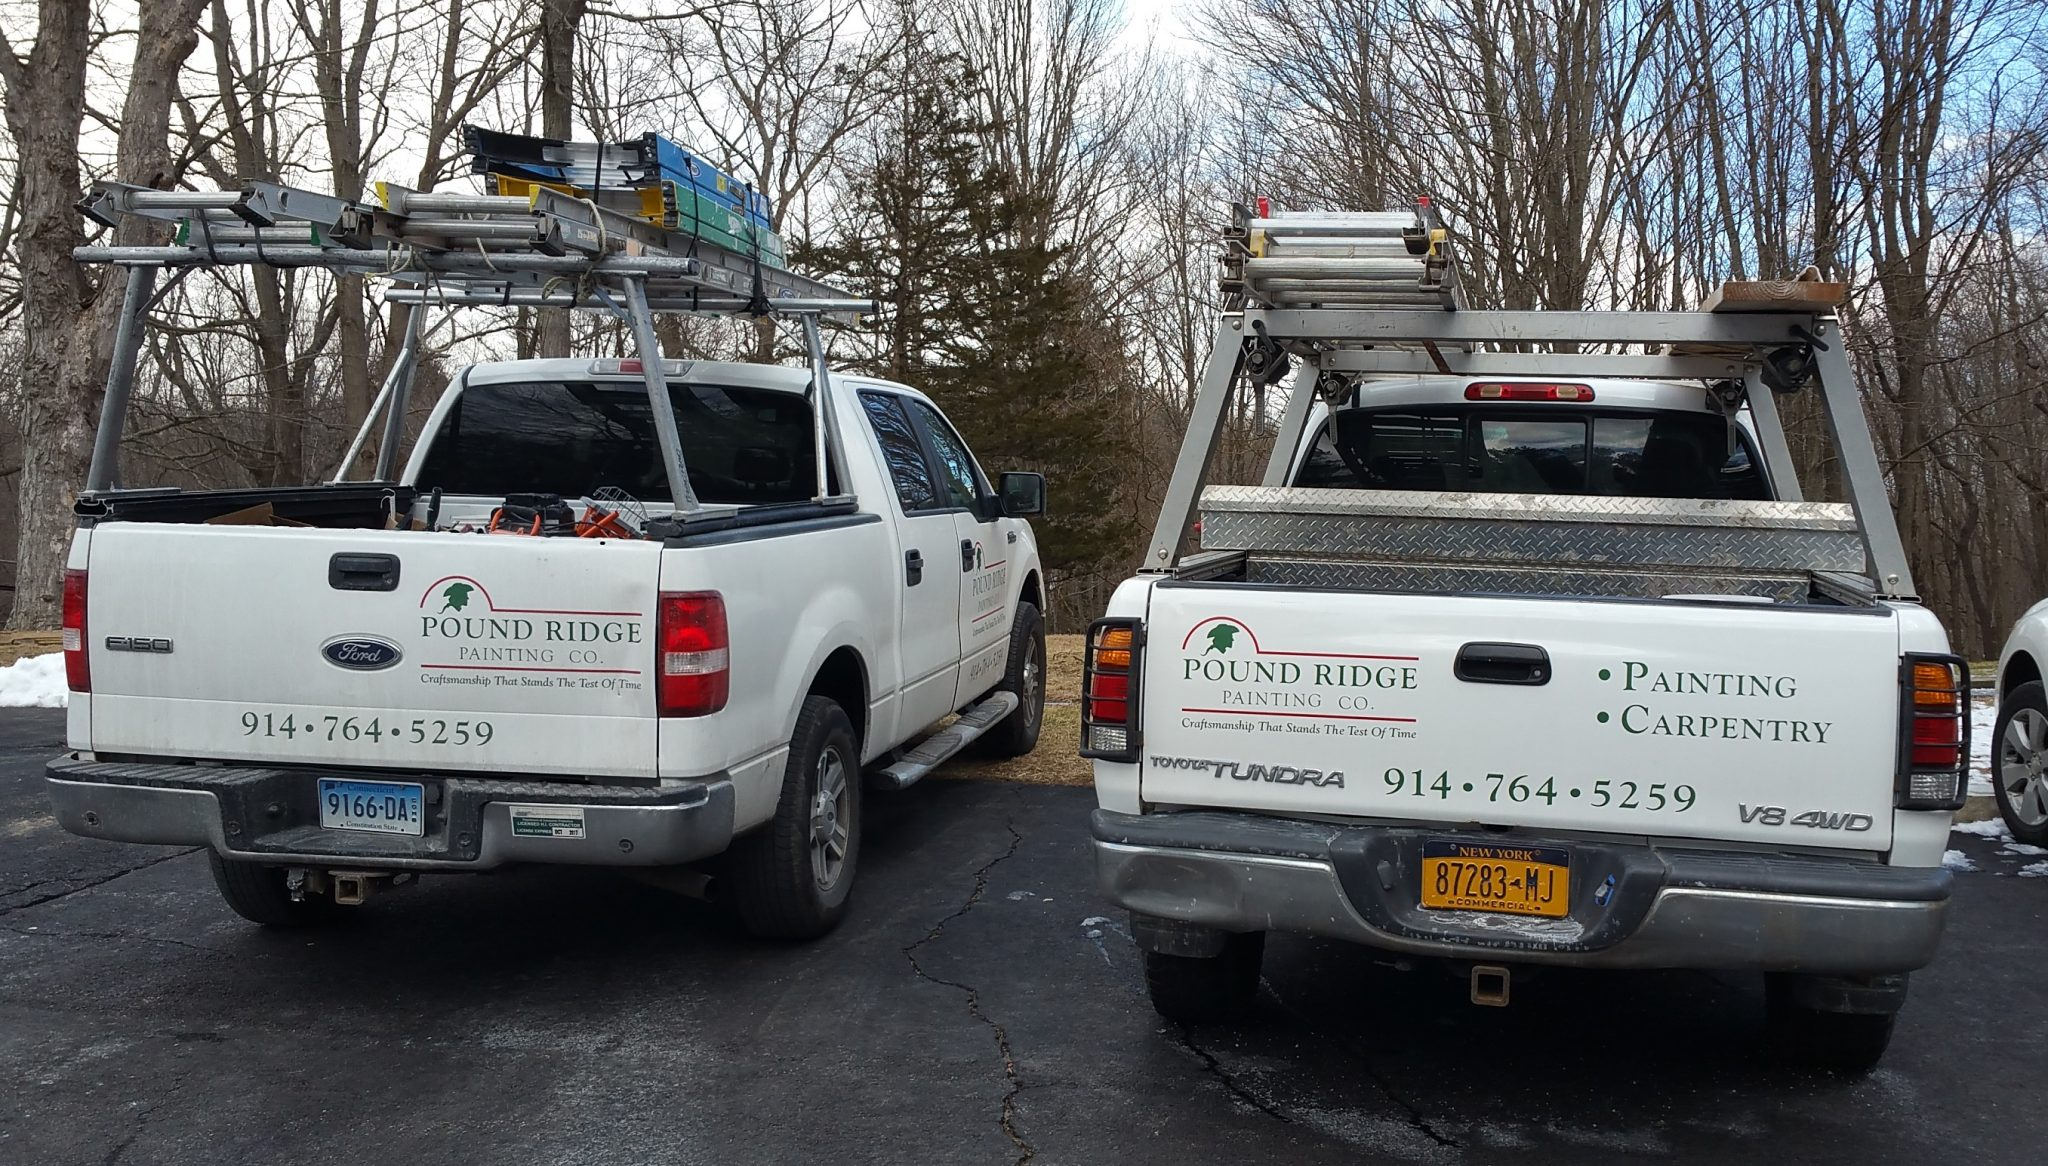 Pound Ridge Painting Company Trucks